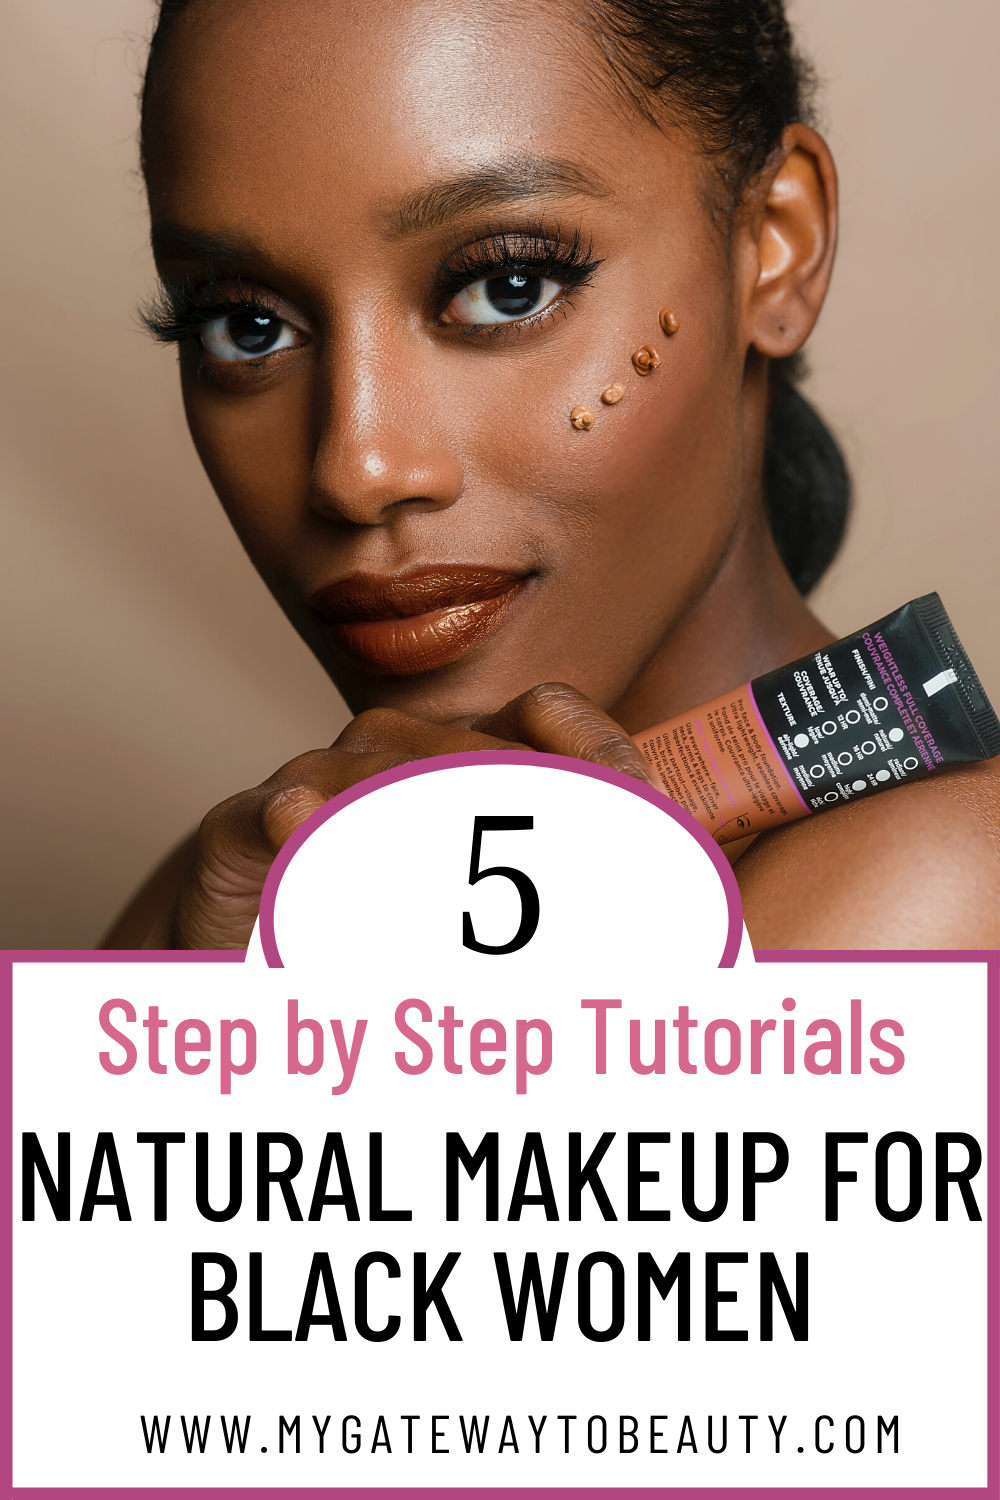 5 Step By Step Tutorials That Teach You Natural Makeup For Black Women My Gateway To Beauty Blog